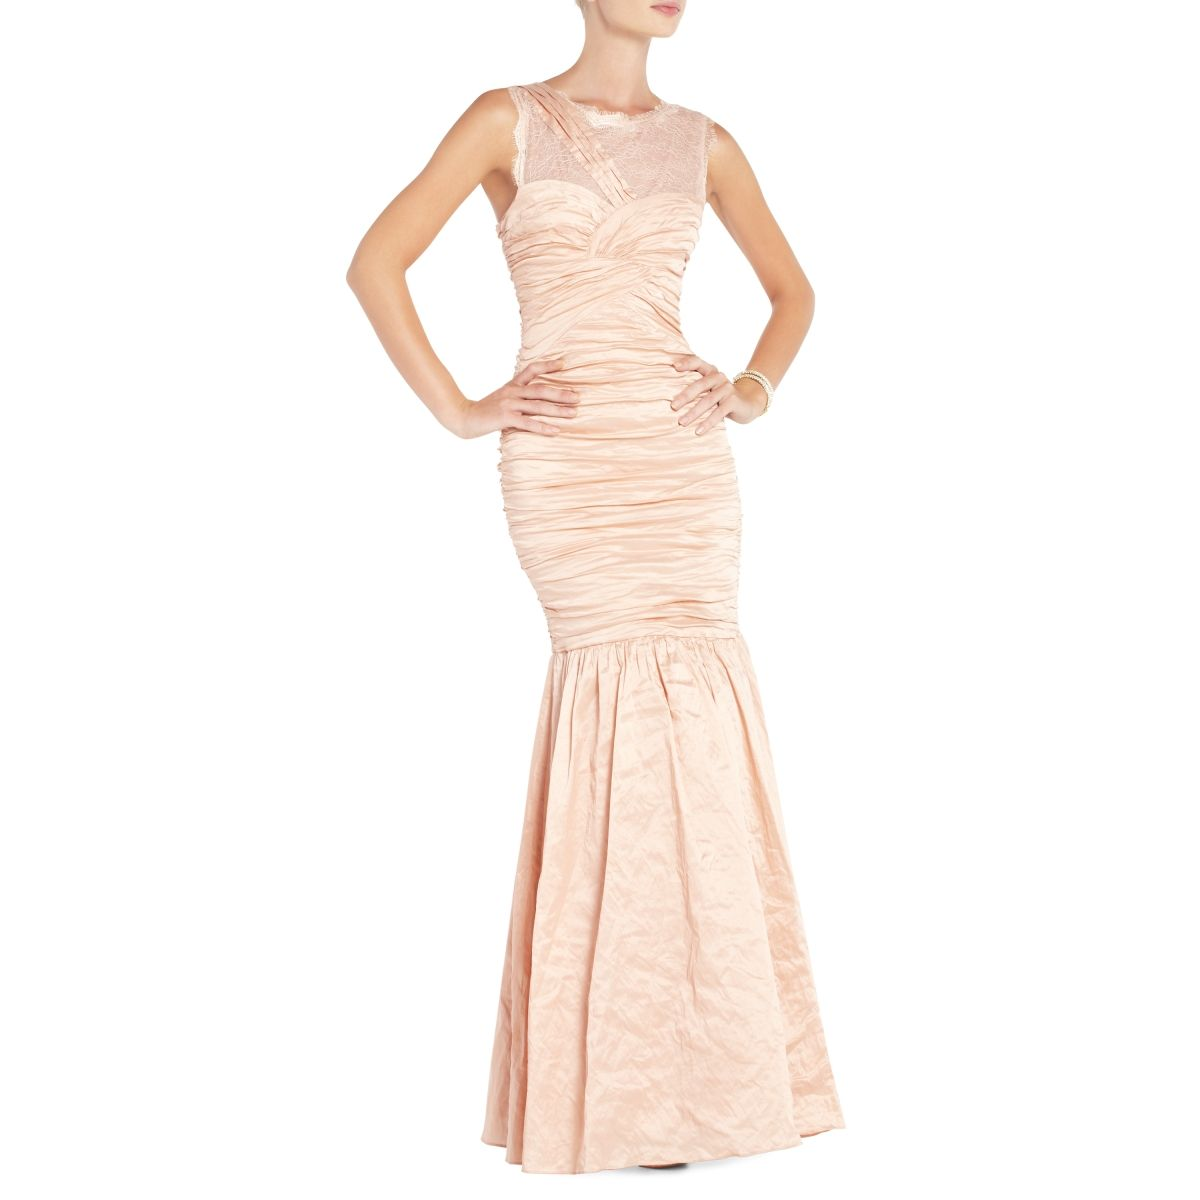 option?BCBGMAXAZRIA - DRESSES: VIEW ALL: GEO ASYMMETRICAL DRAPED ...